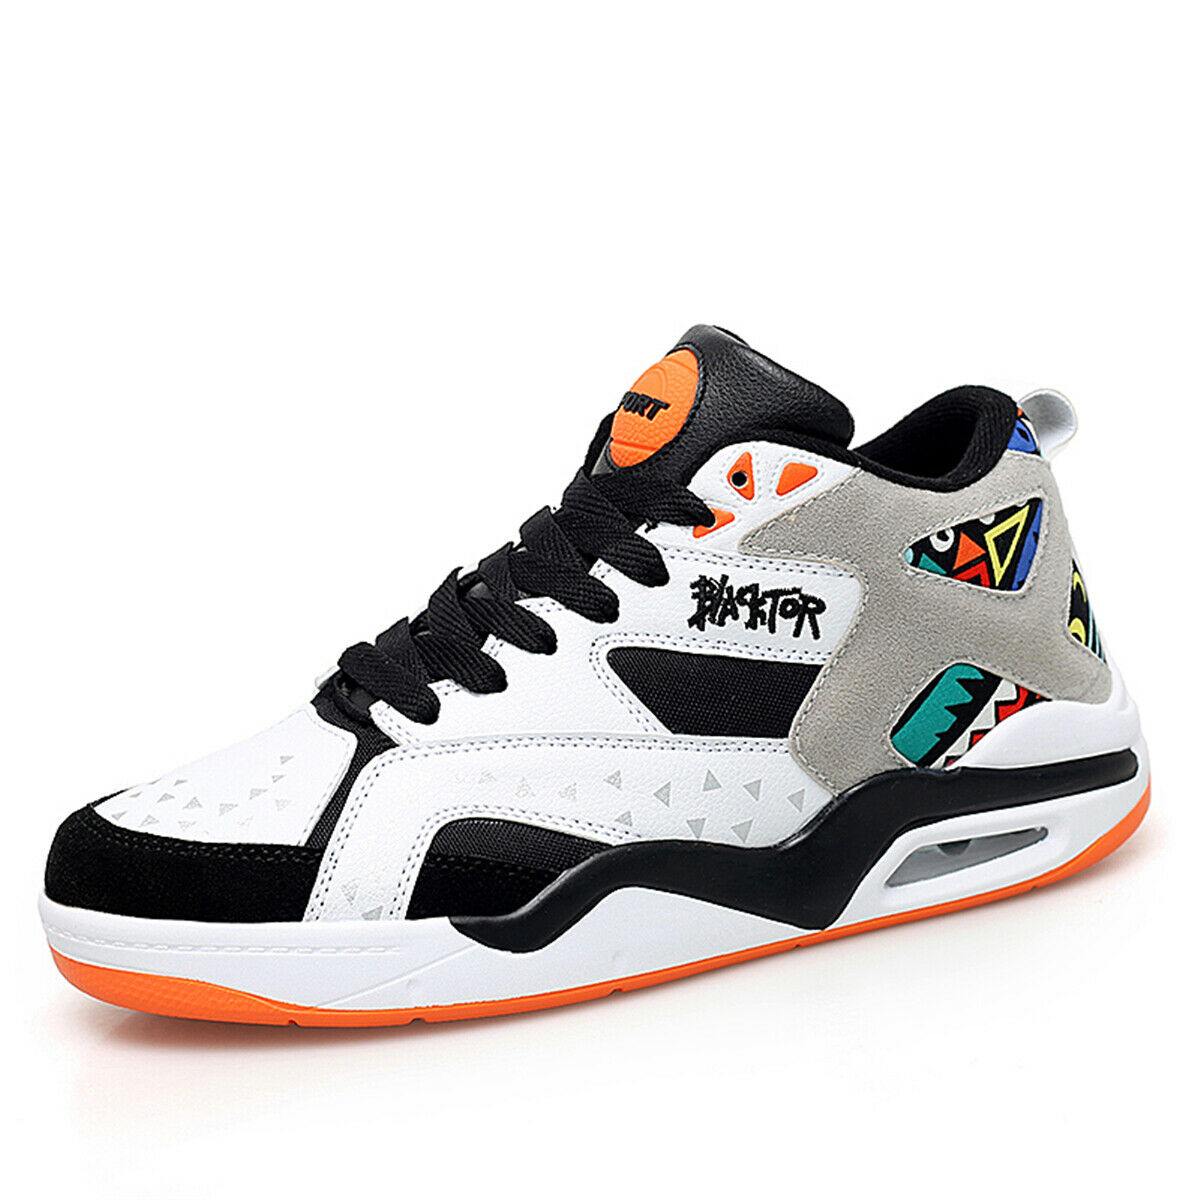 Fashion Mens Sports Casual shoes Basketball Athletic Sneakers Lace Up Platform